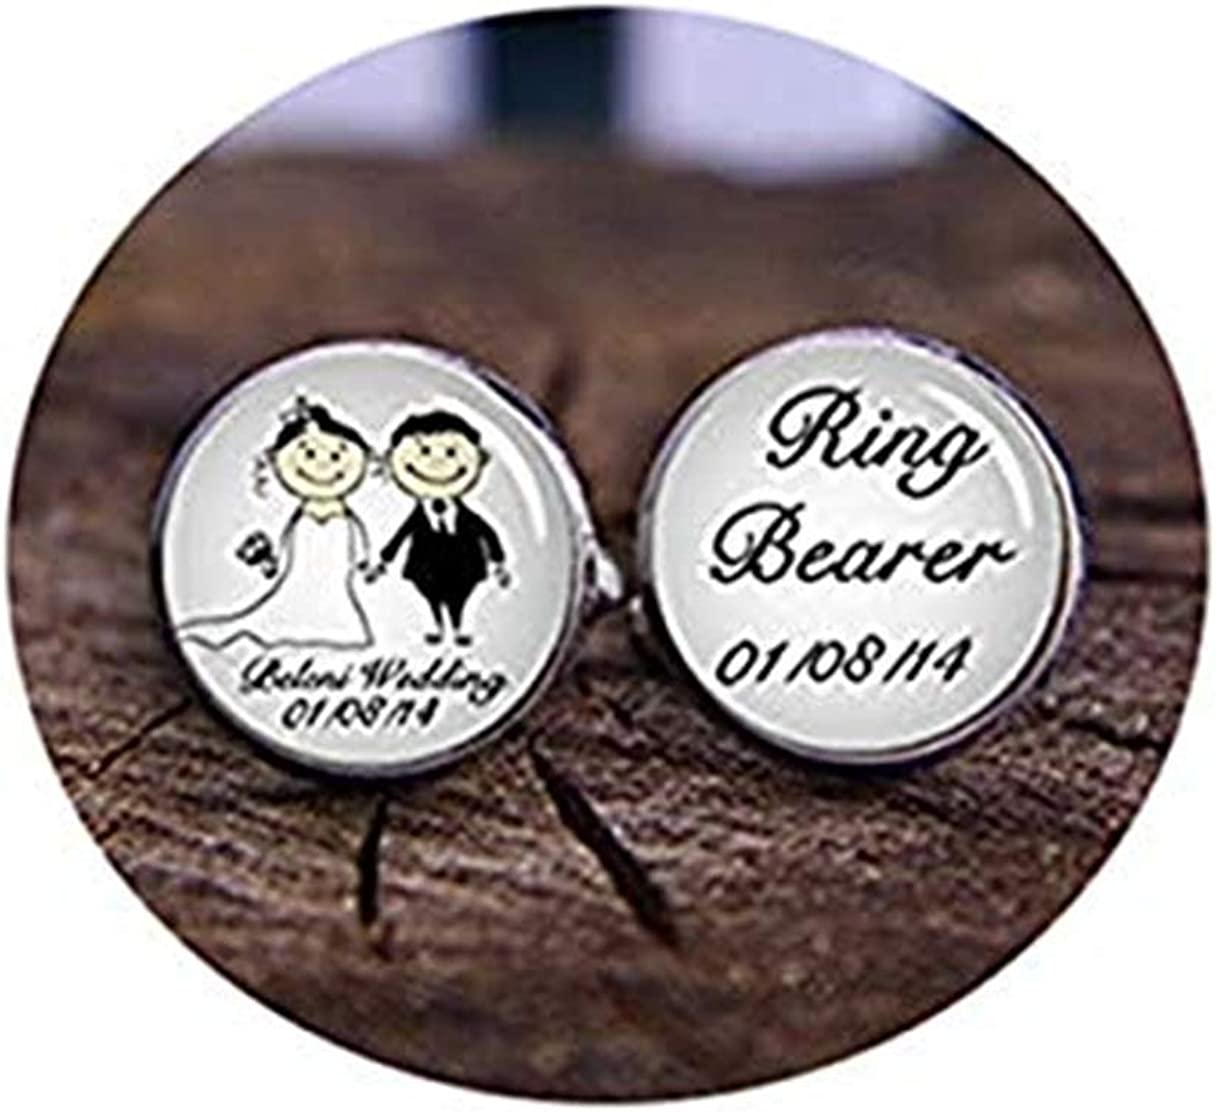 Death Devil Custom Cuff Links,Ring Bearer Cufflinks, Custom Date Cuff Links, Custom Your Name Wedding Cufflinks, Groom Cuff Links, Gifts for Brother, Page Boy Cufflinks,Gift of Love